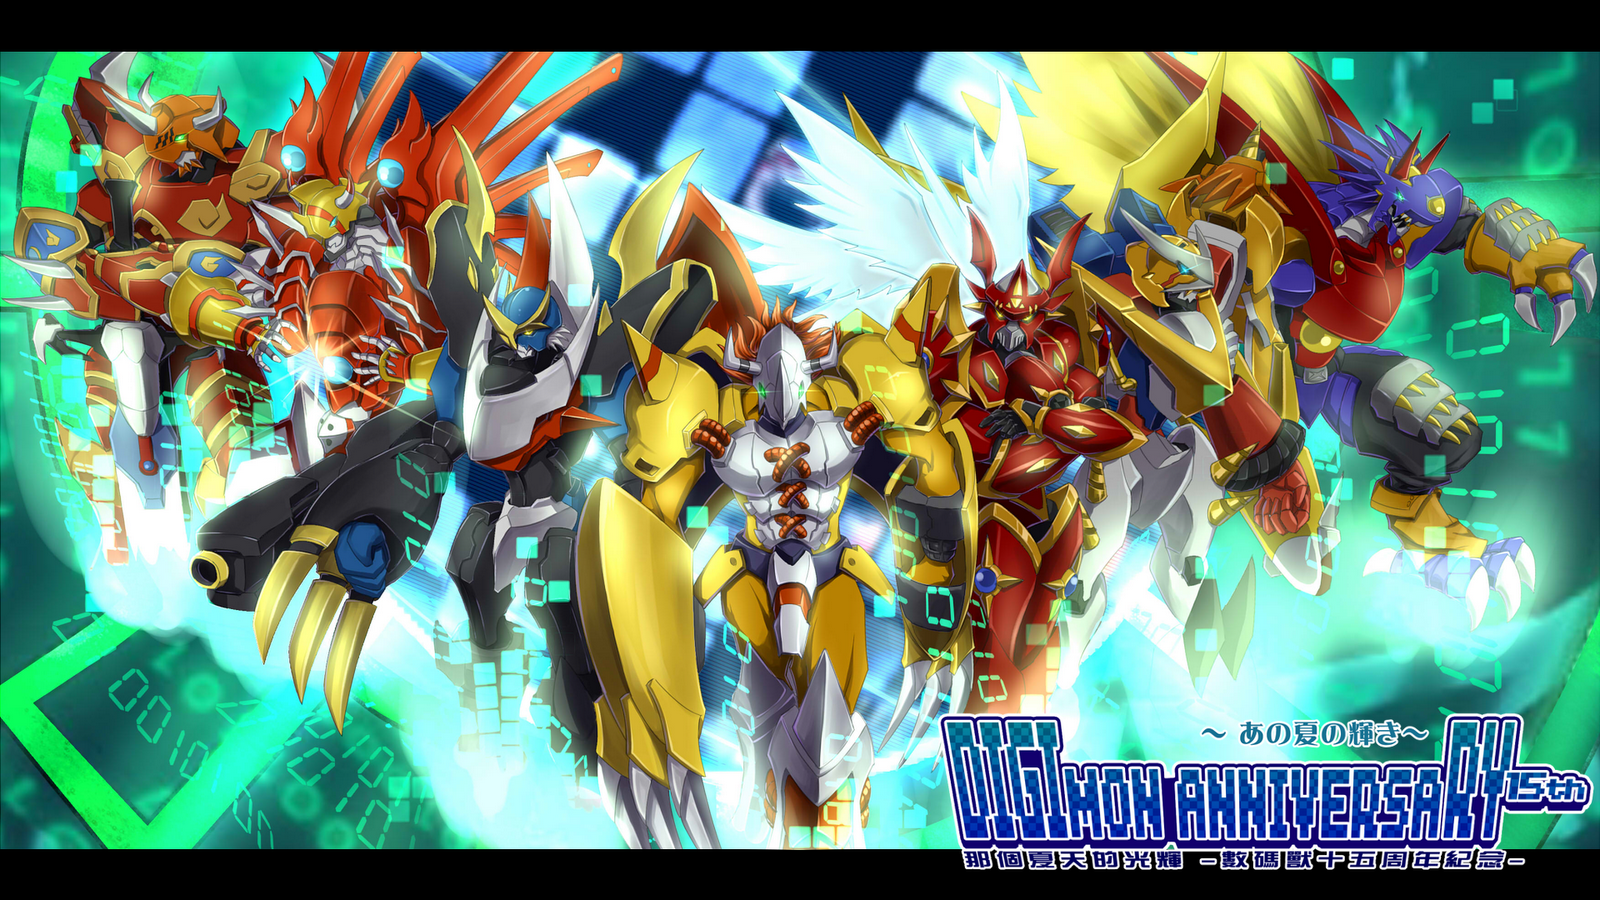 Download Digimon Wallpaper For Desktop